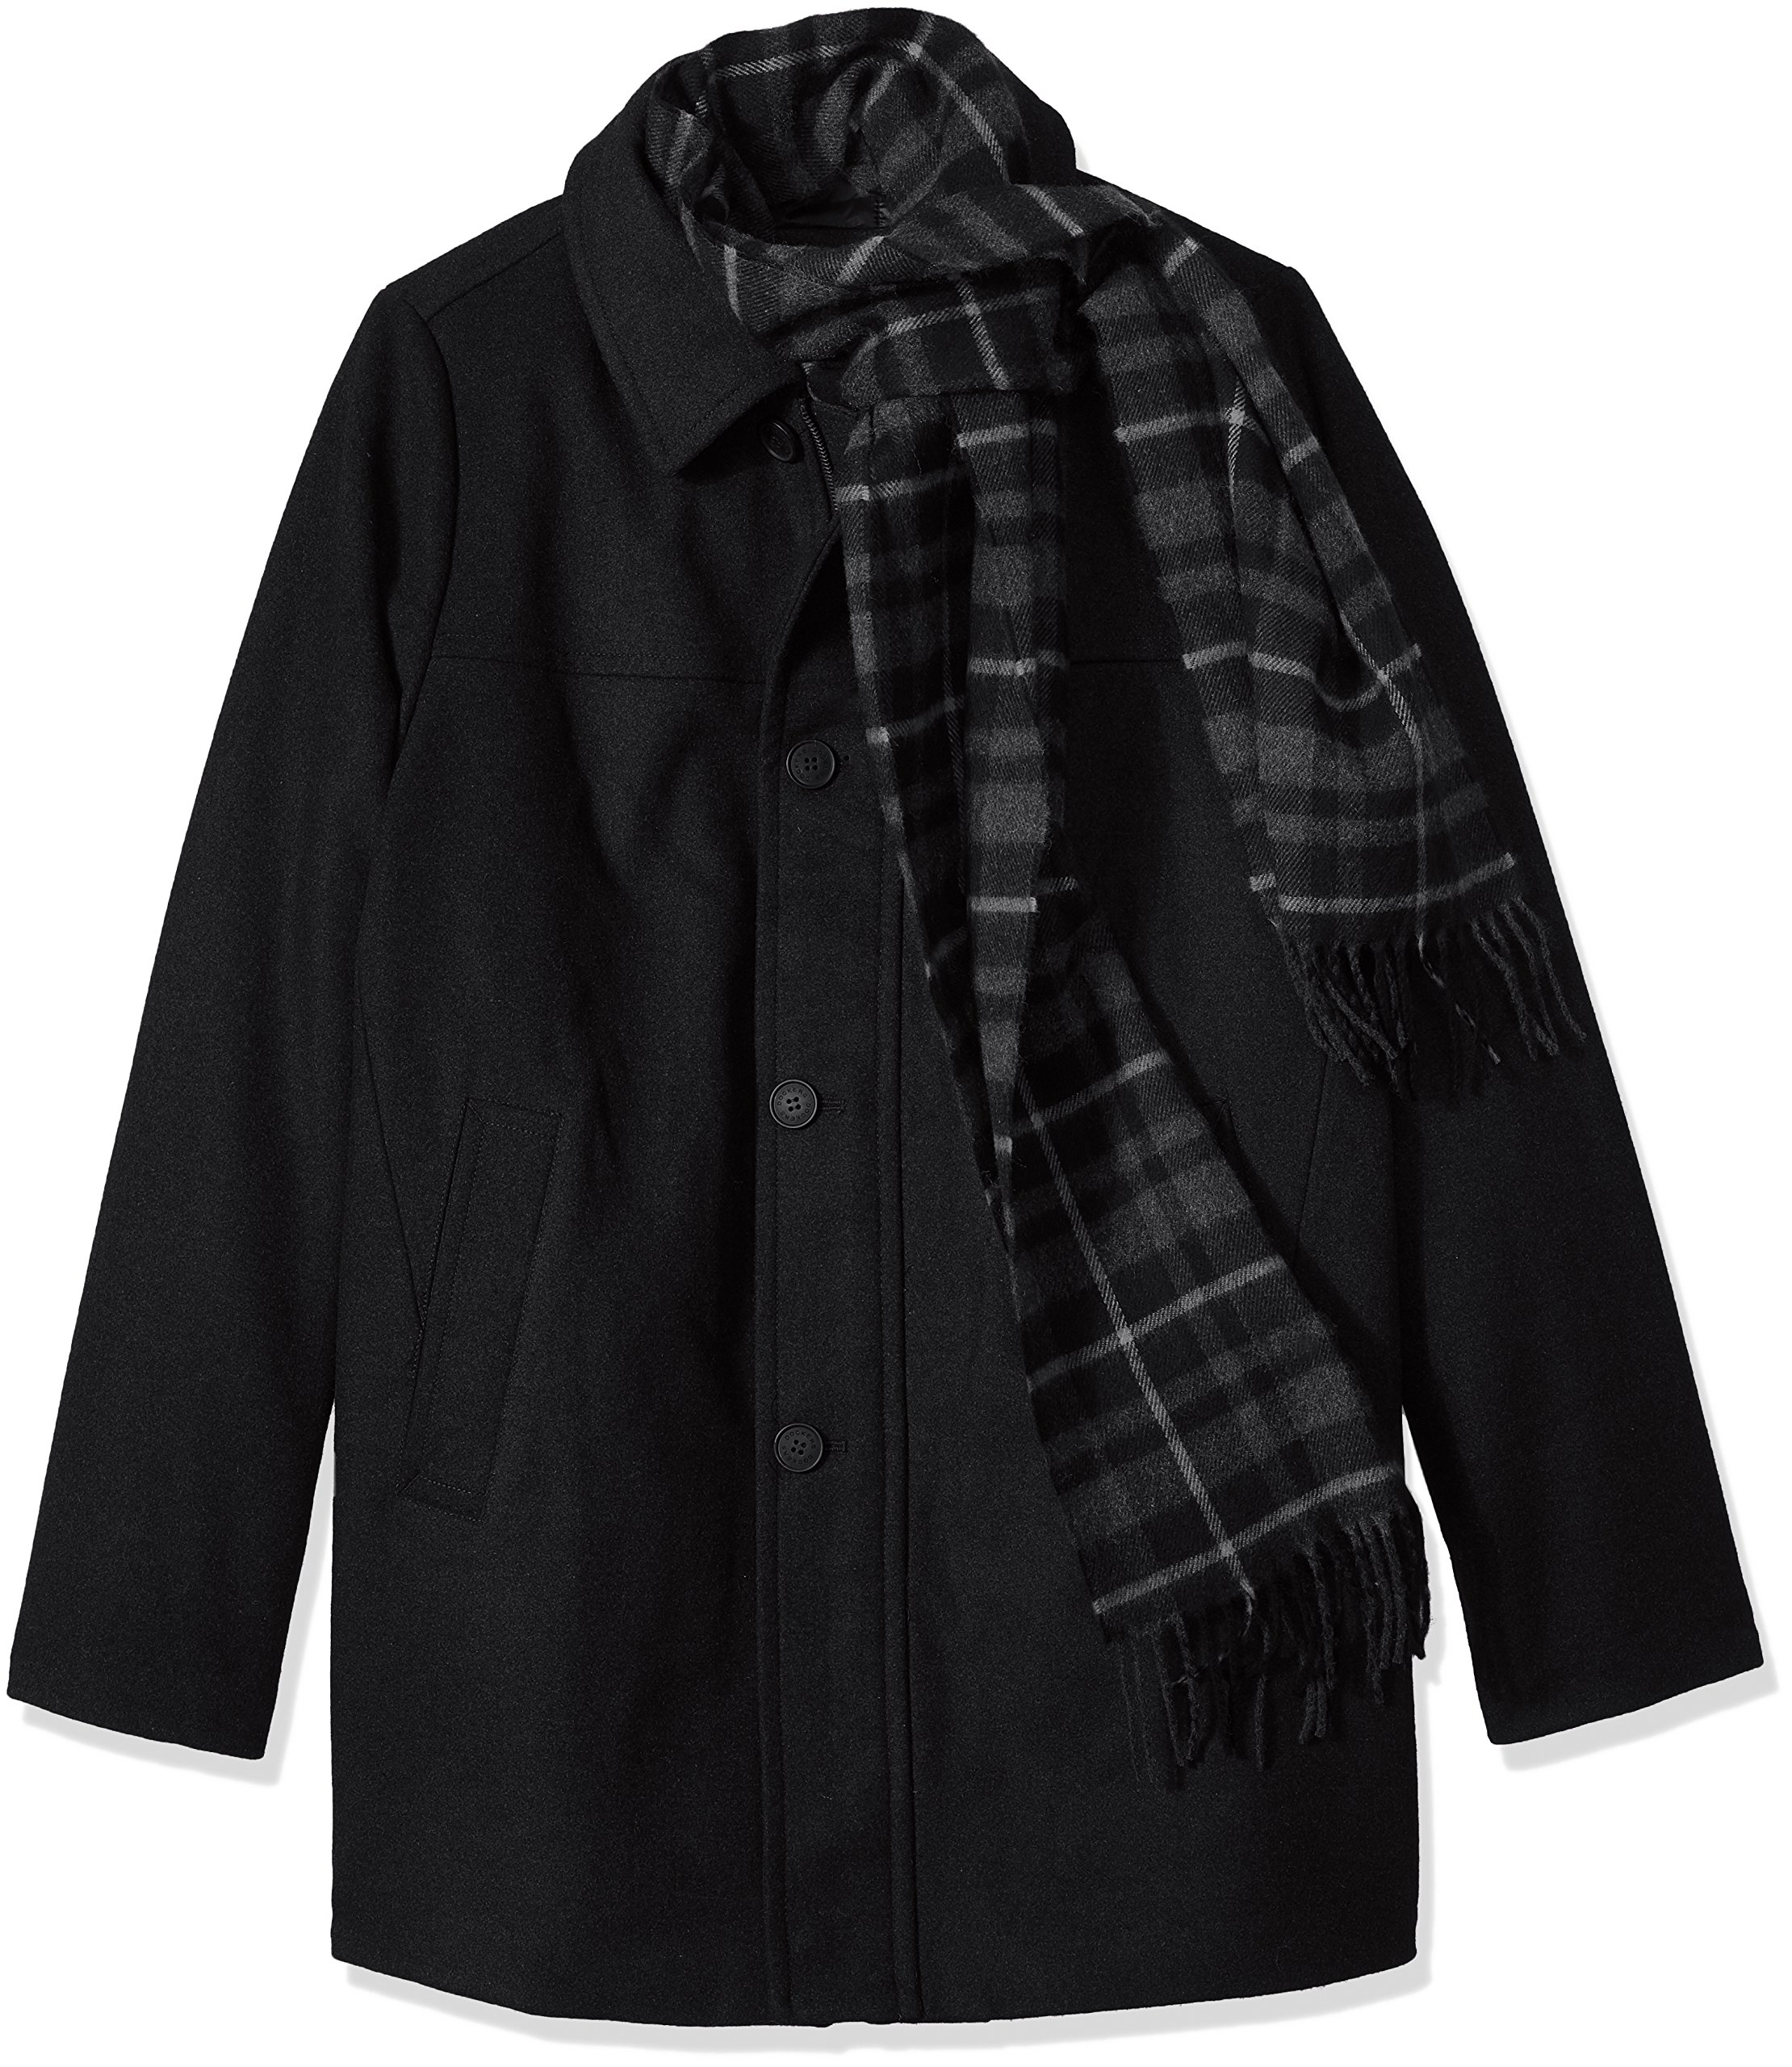 Dockers Men's Size Big Weston Wool Blend Car Coat with Scarf, Black, 2X-Large Tall by Dockers